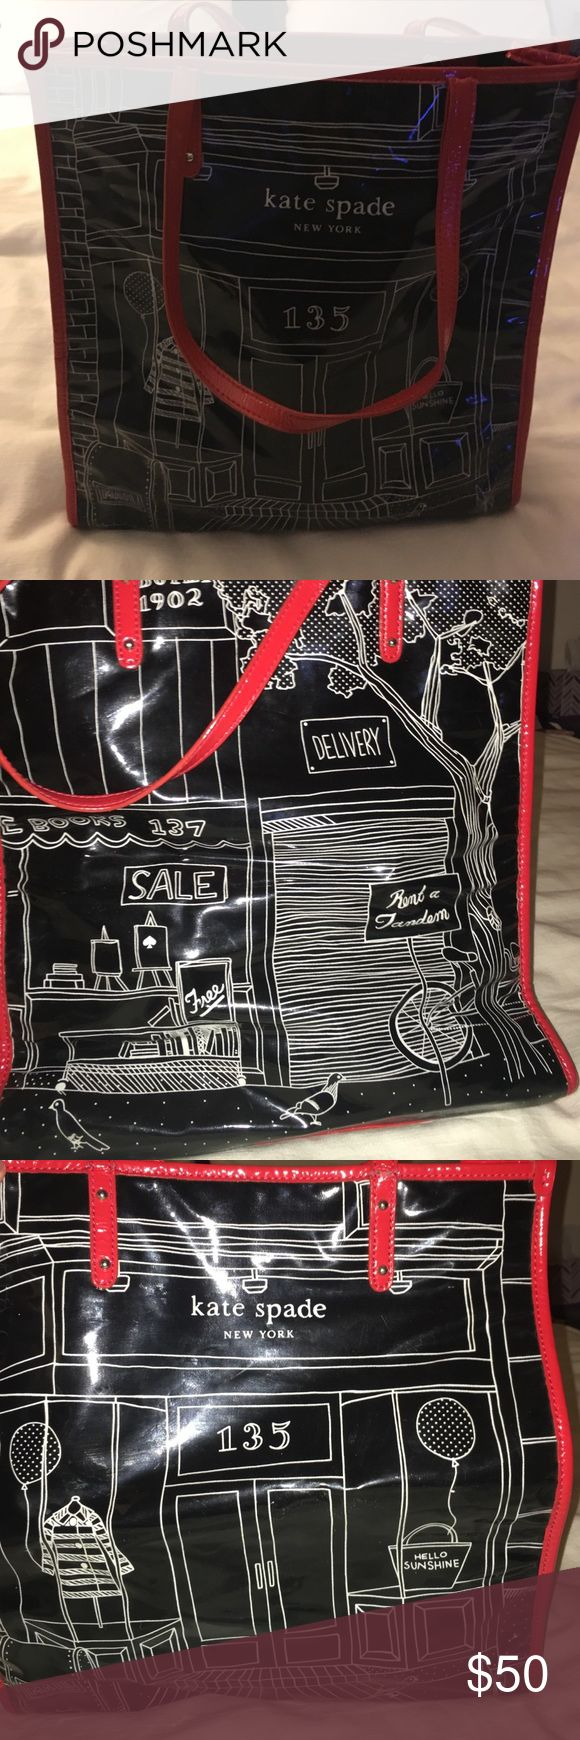 Kate Spade illustrated tote bag Kate Spade nylon tote with illustration design. Red handles and canvas inside. kate spade Bags Totes